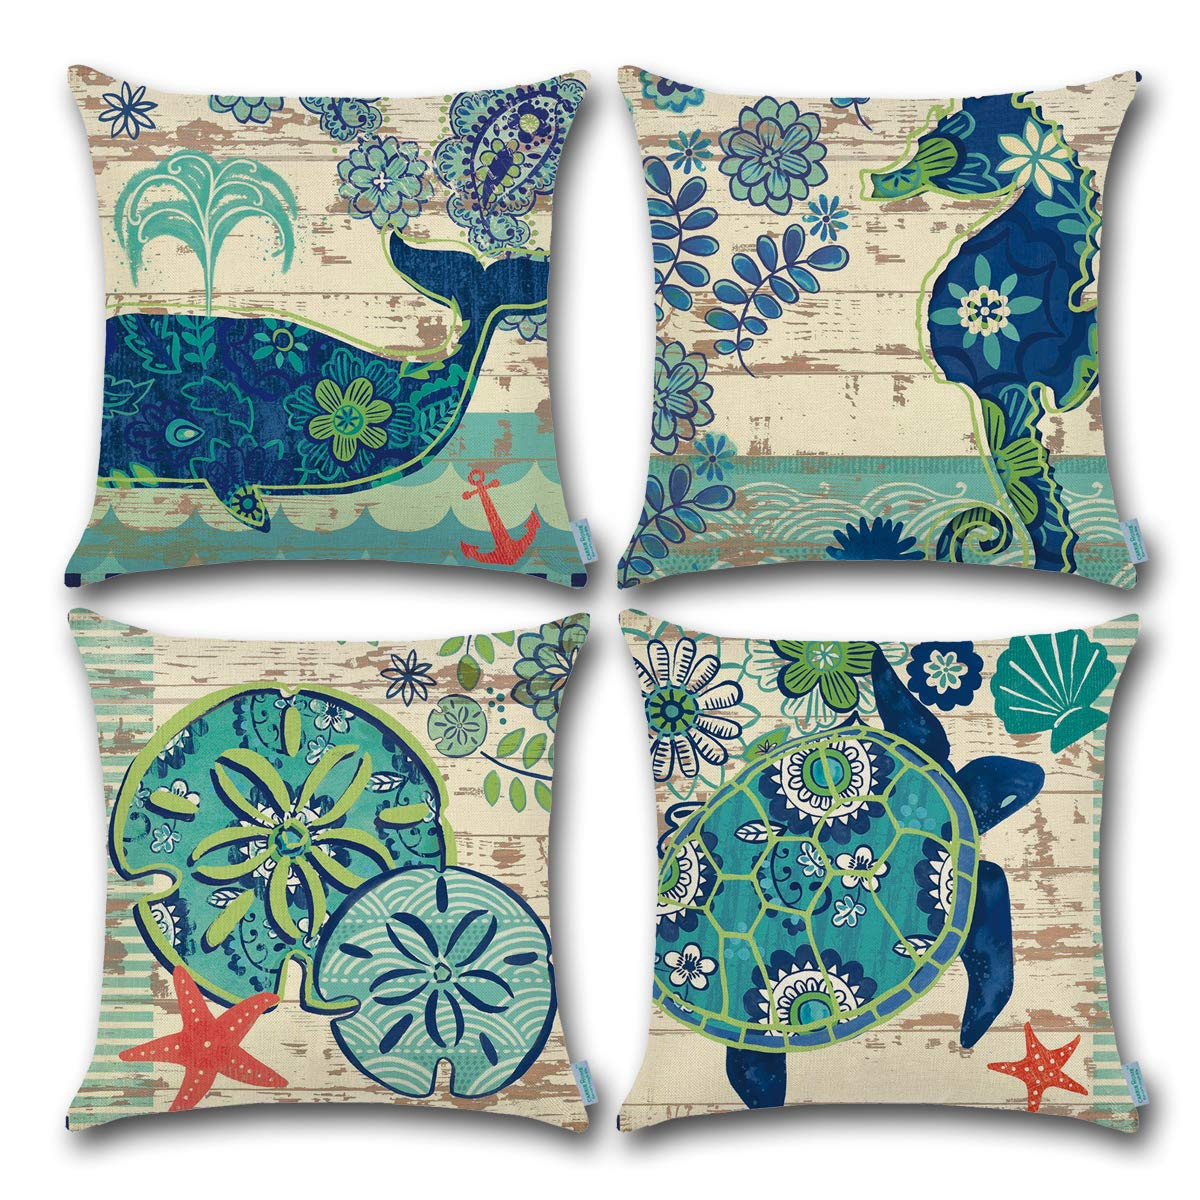 CARRIE HOME Ocean Nautical Theme Decor Turtle/Lotus Leaf/Seahorse/Whale Outdoor Decorative Throw Pillow Case Cushion Covers 18 x 18 Inch, 4 Pack